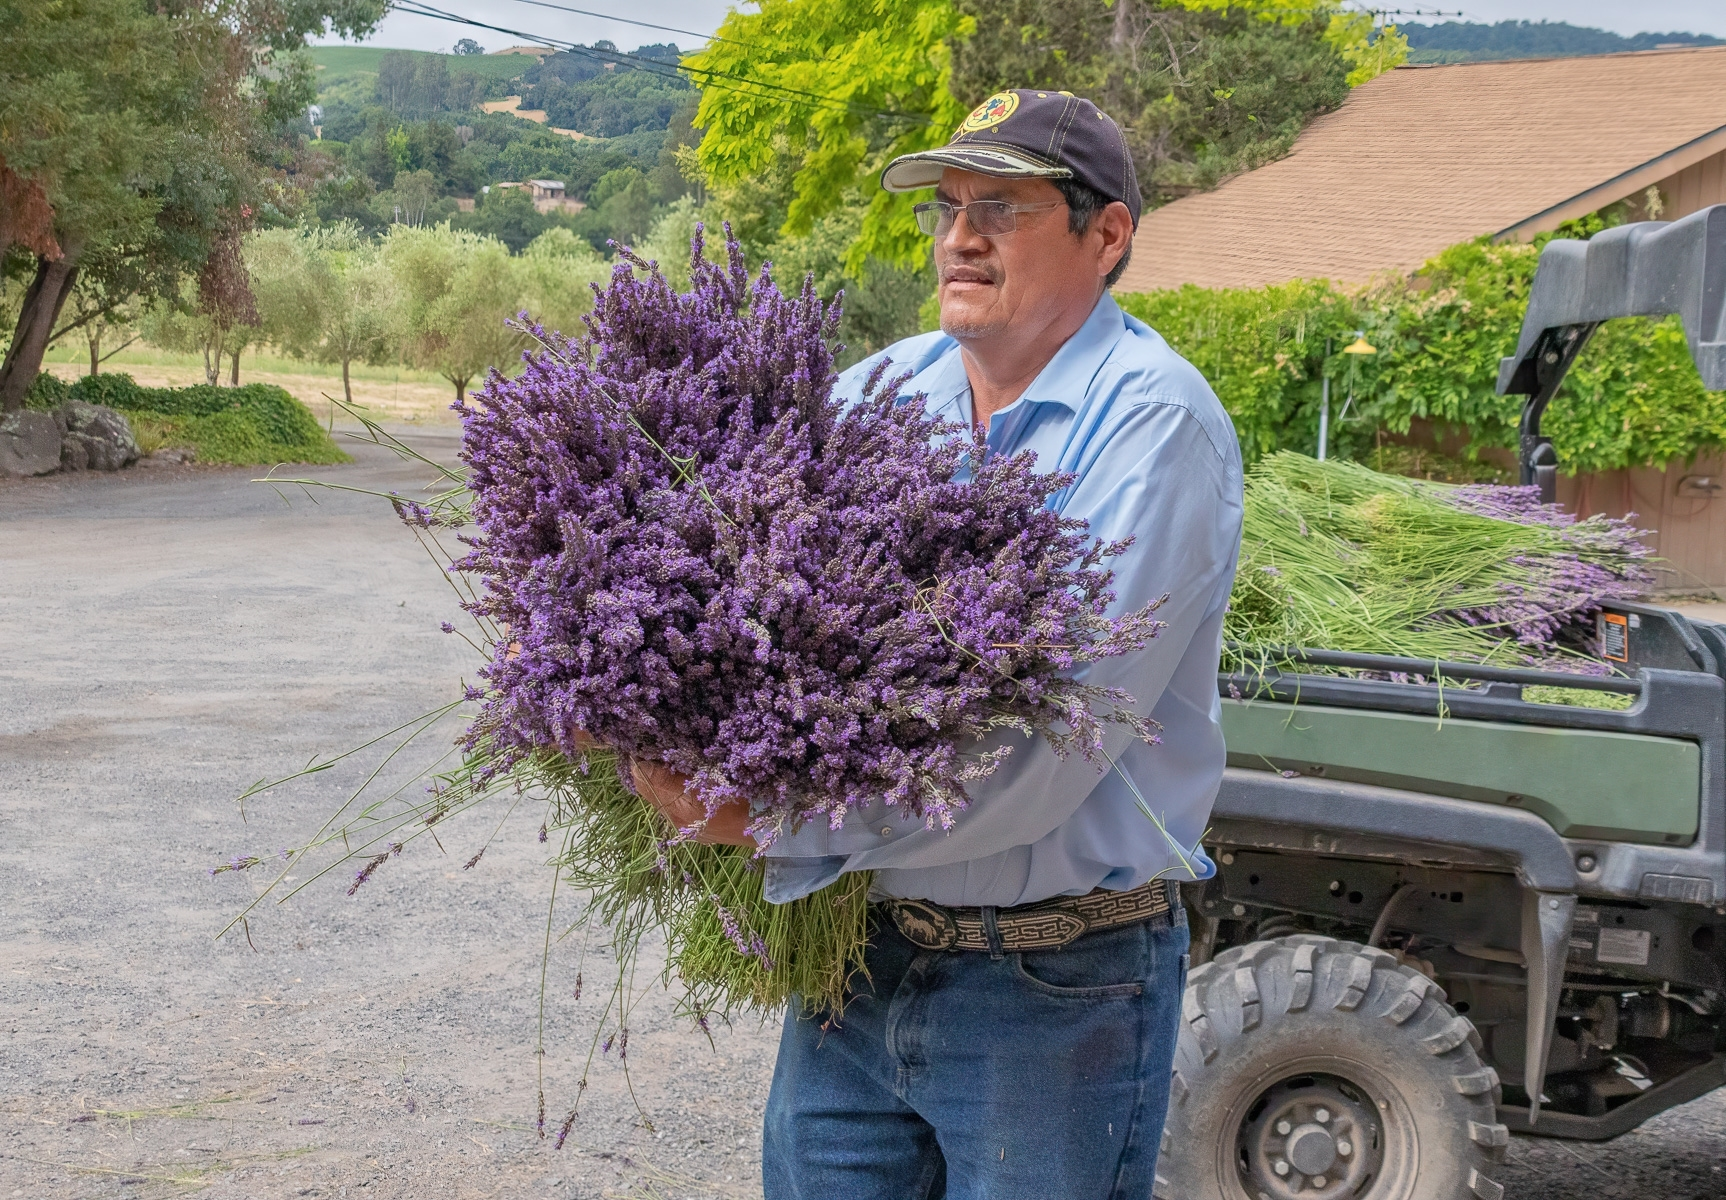 Lavender-2-The-gathered-lavender-is-transported-from-the-field-using-a-small-truck.-JI-Place-by-Betsy-Waters-SR